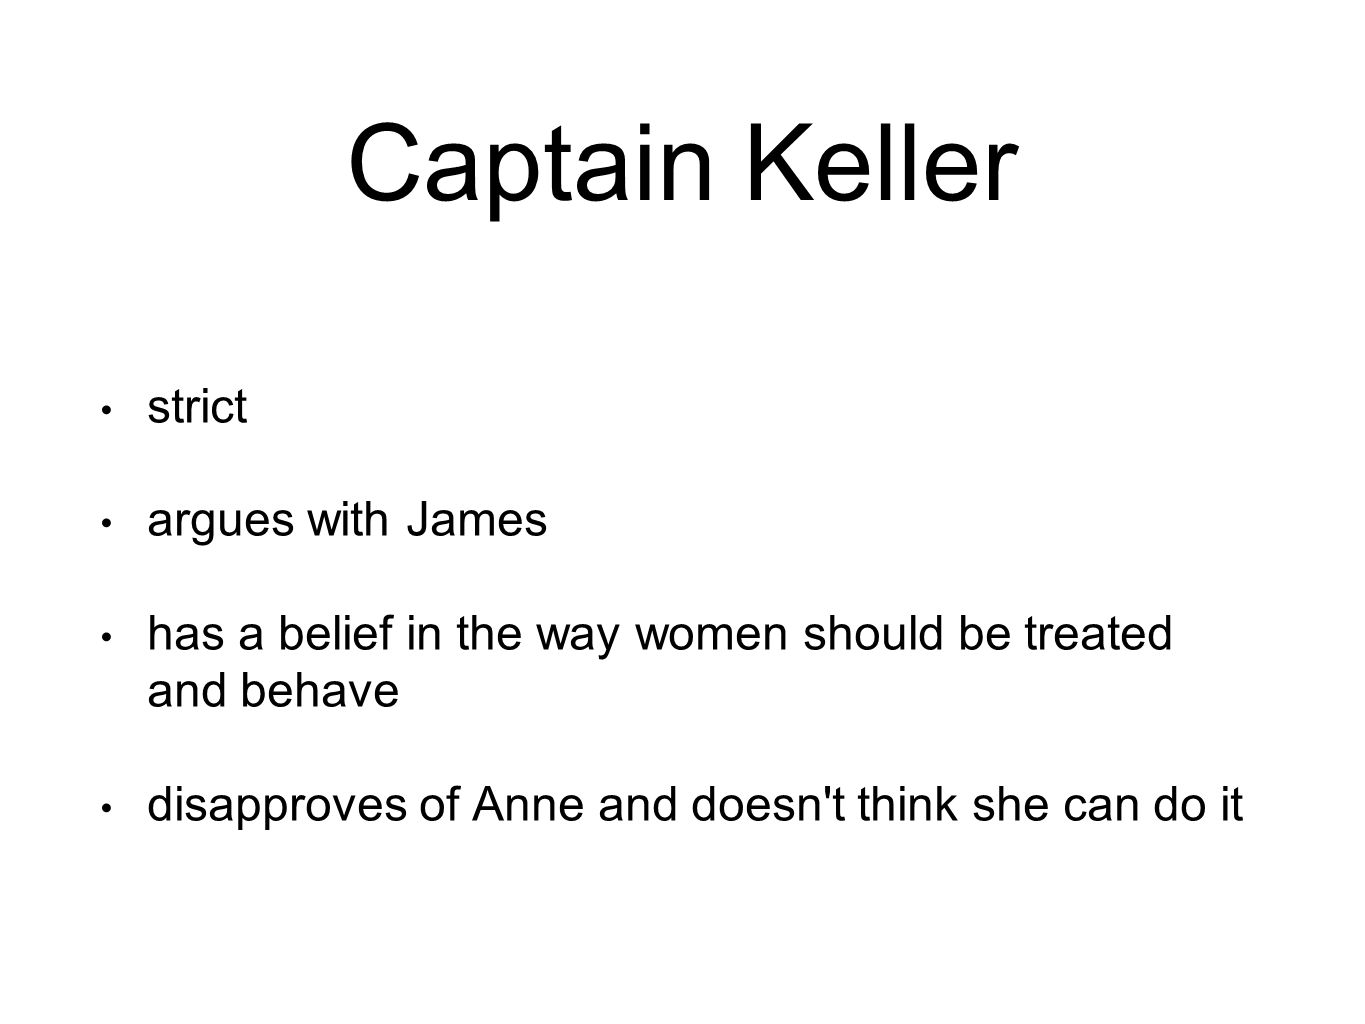 Captain Keller strict argues with James has a belief in the way women should be treated and behave disapproves of Anne and doesn t think she can do it